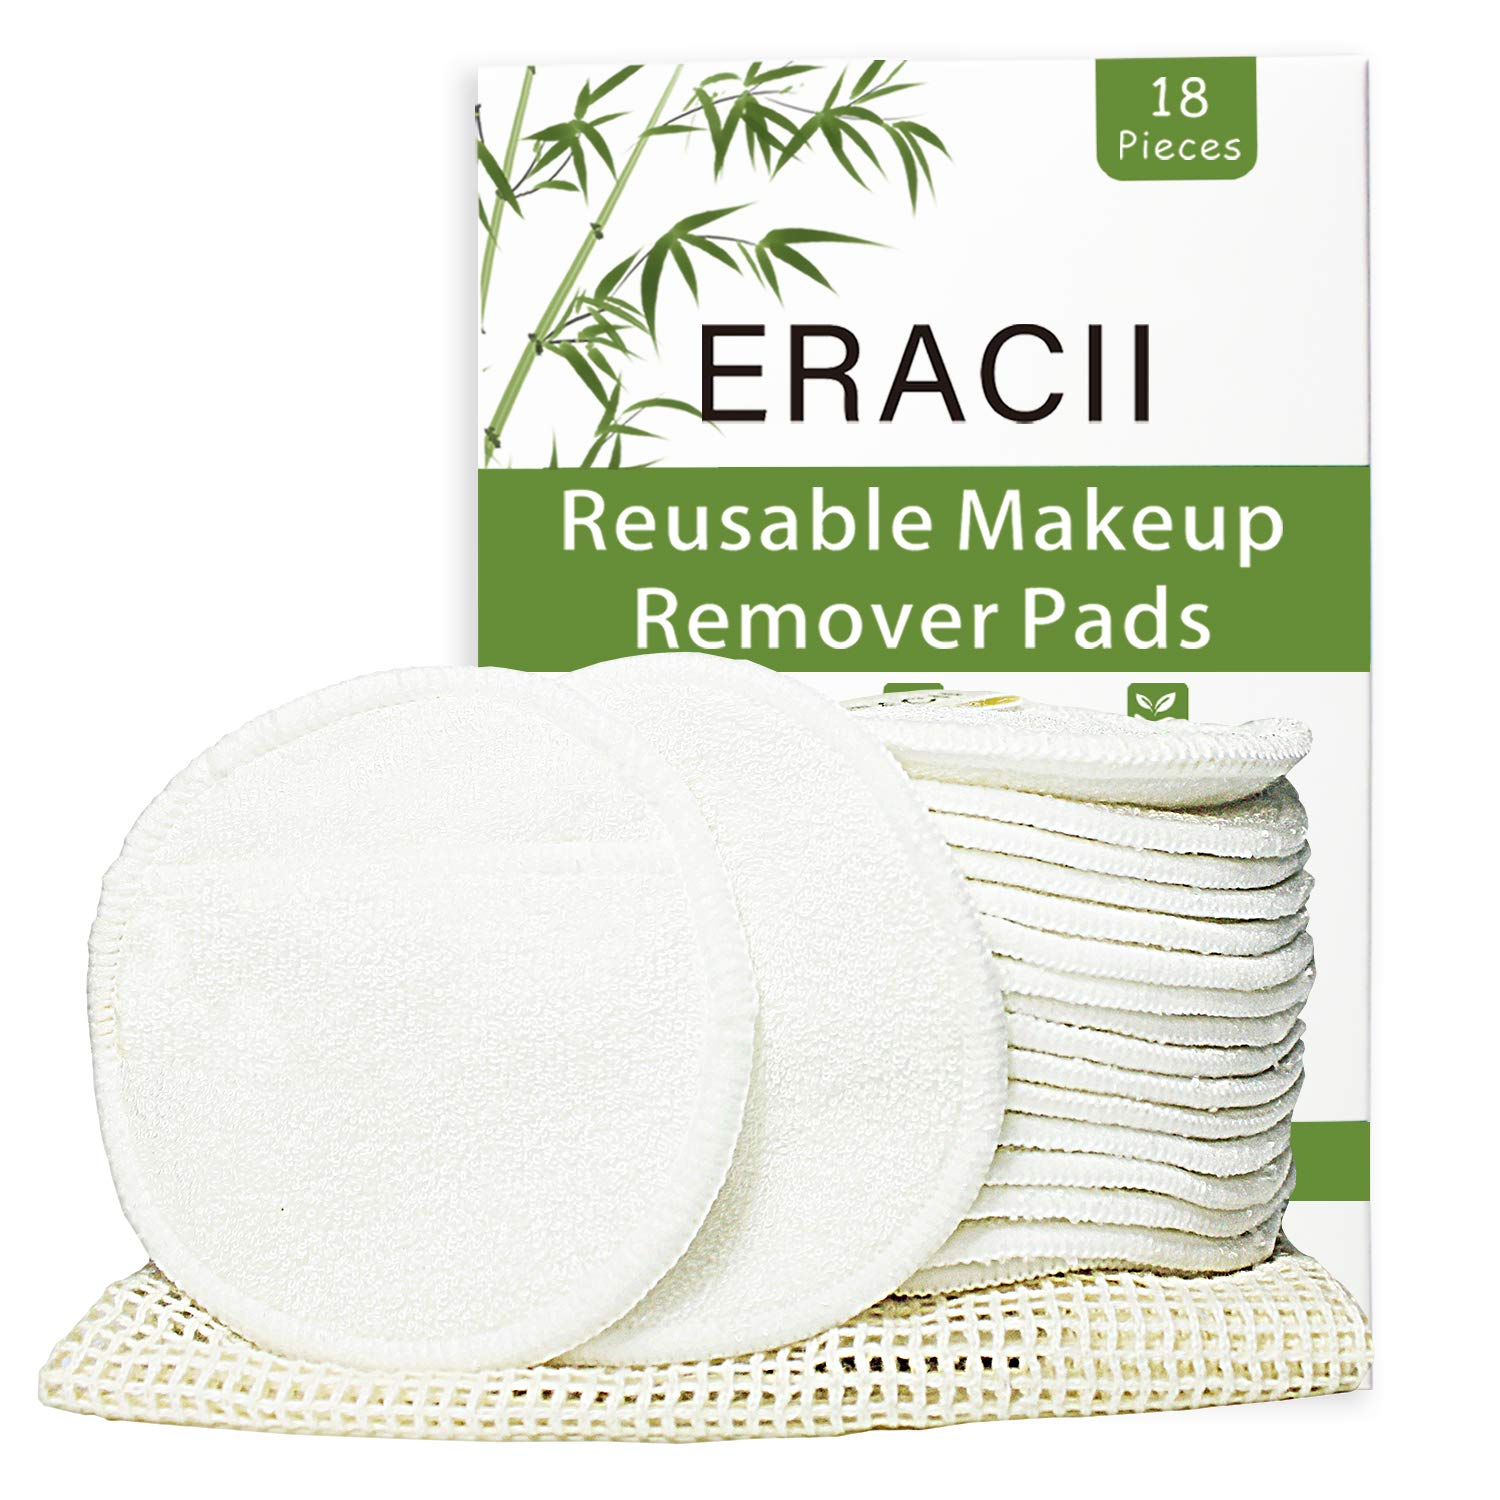 Reusable Cotton Pads - ERACII 18 Packs Reusable Makeup Remover Pads, Organic Bamboo Cotton Face Pads, Zero Waste Face Pads for All Skin Types, Skin-Friendly - Washable, with Laundry Bag